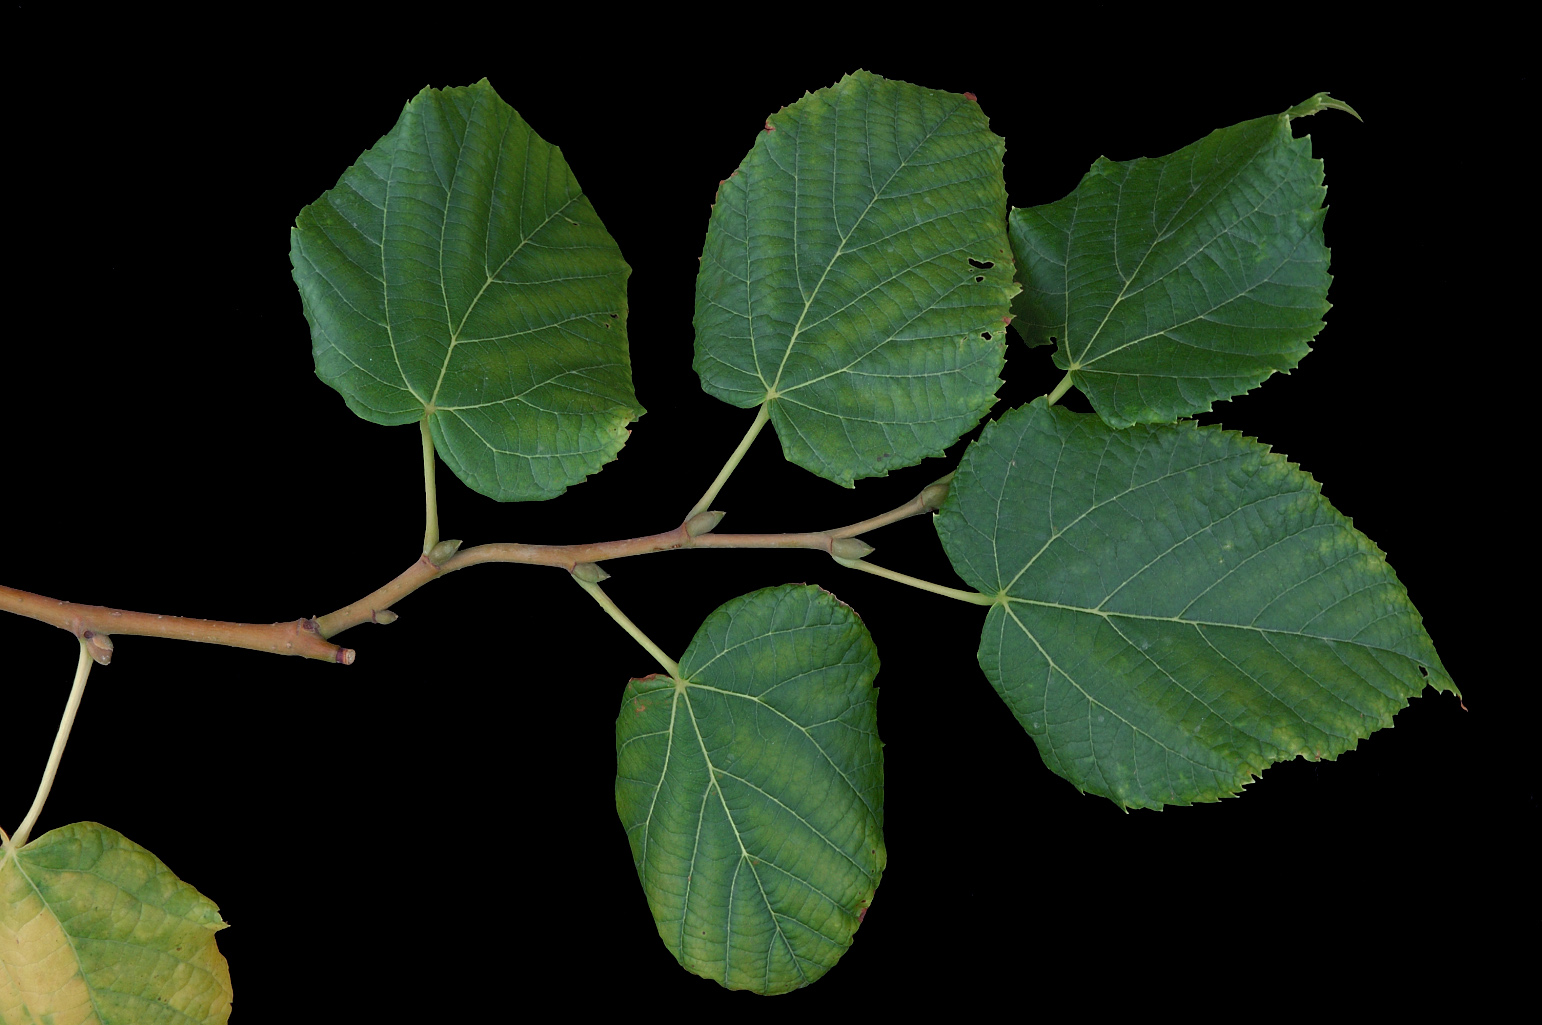 Branch with broadly ovate leaves with an asymmetrical cordate base and a short acuminate apex